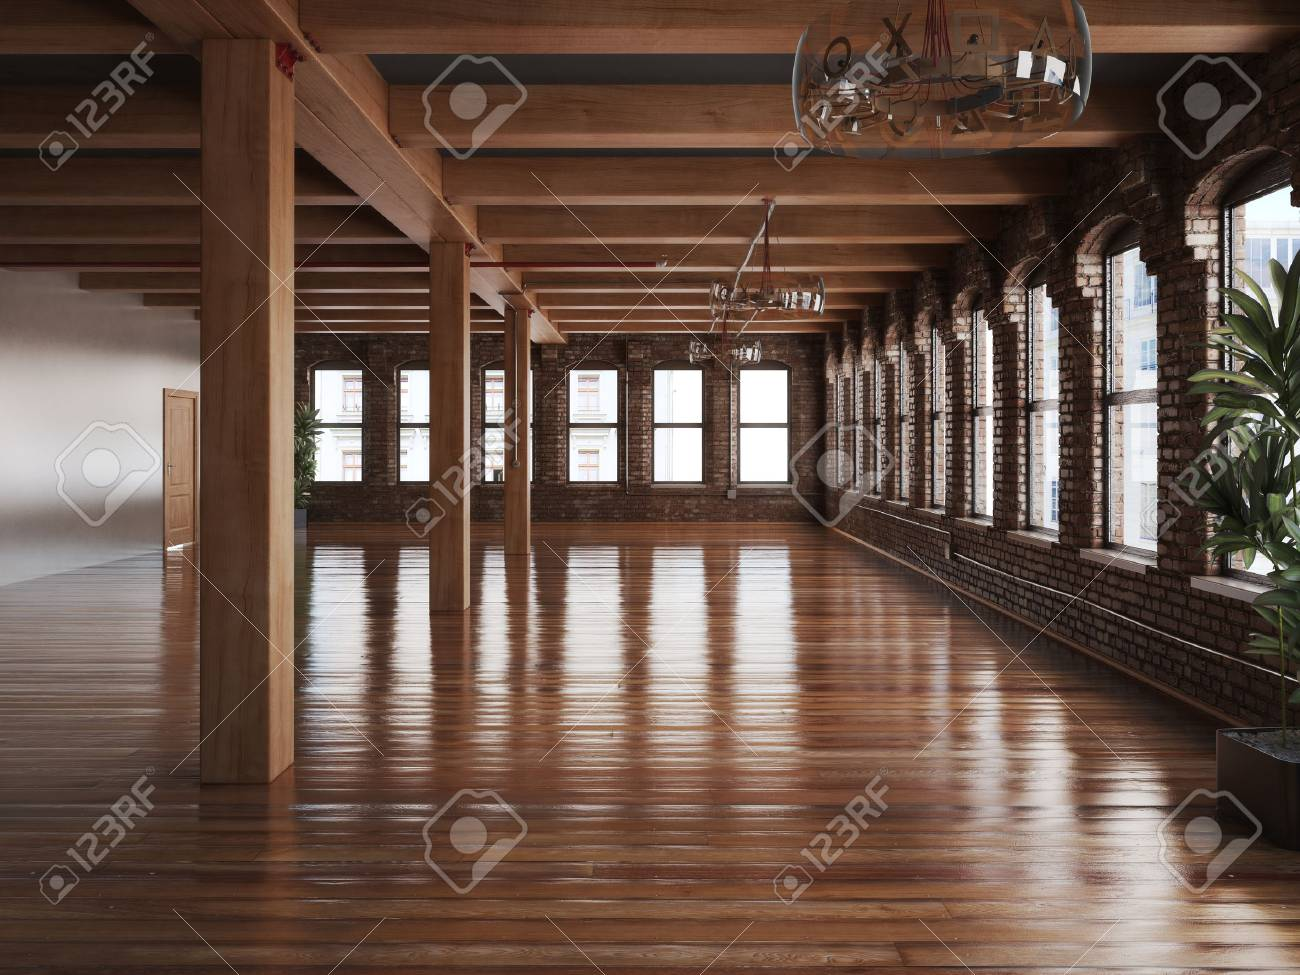 Empty Room Interior Of A Residence Or Office Space With Rustic Timbers And Wood Floors Stock